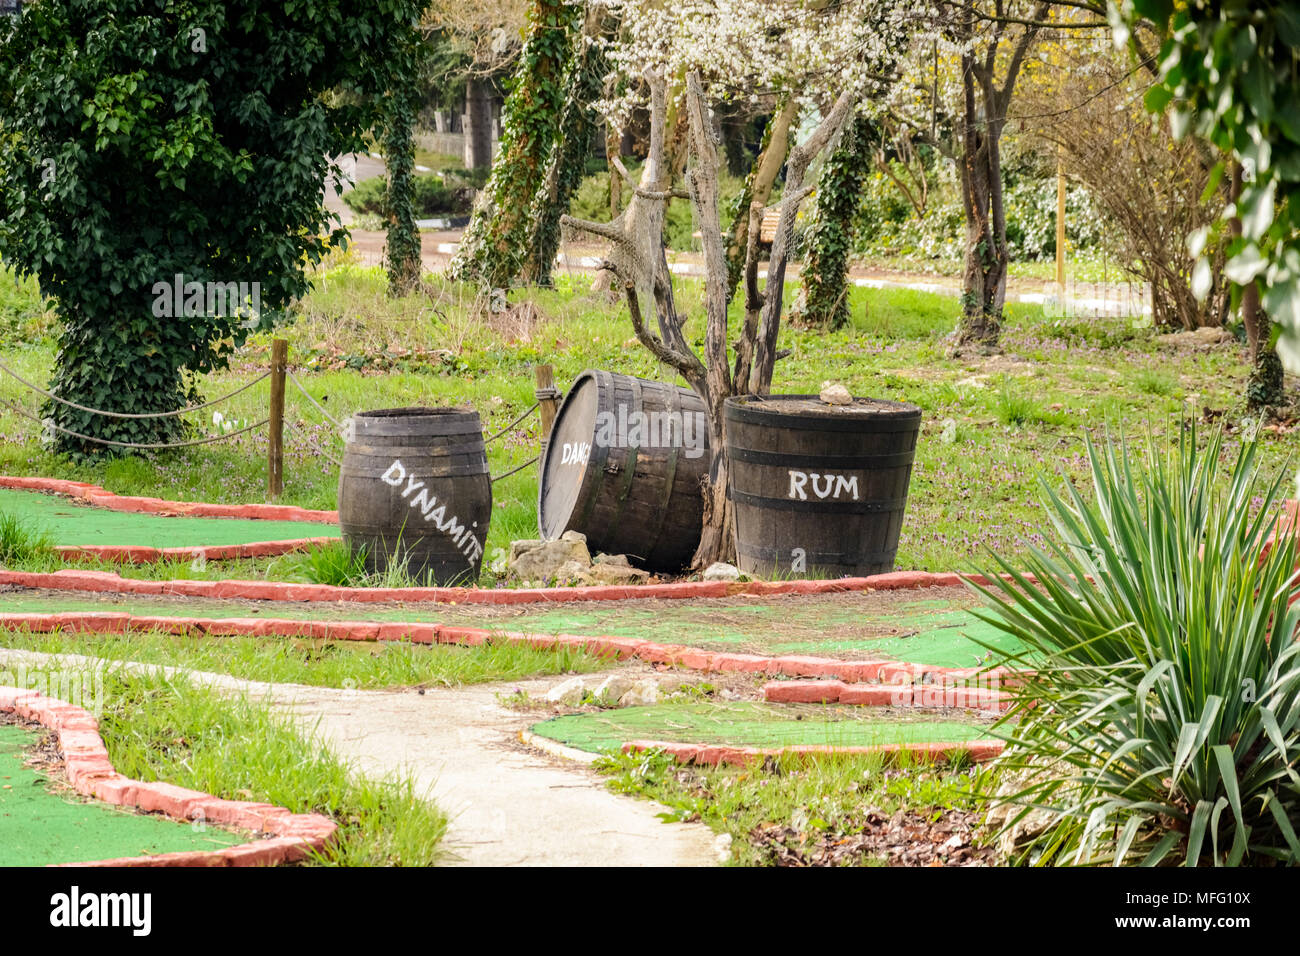 crate and barrel with rum and dynamite on a mini golf - Stock Image